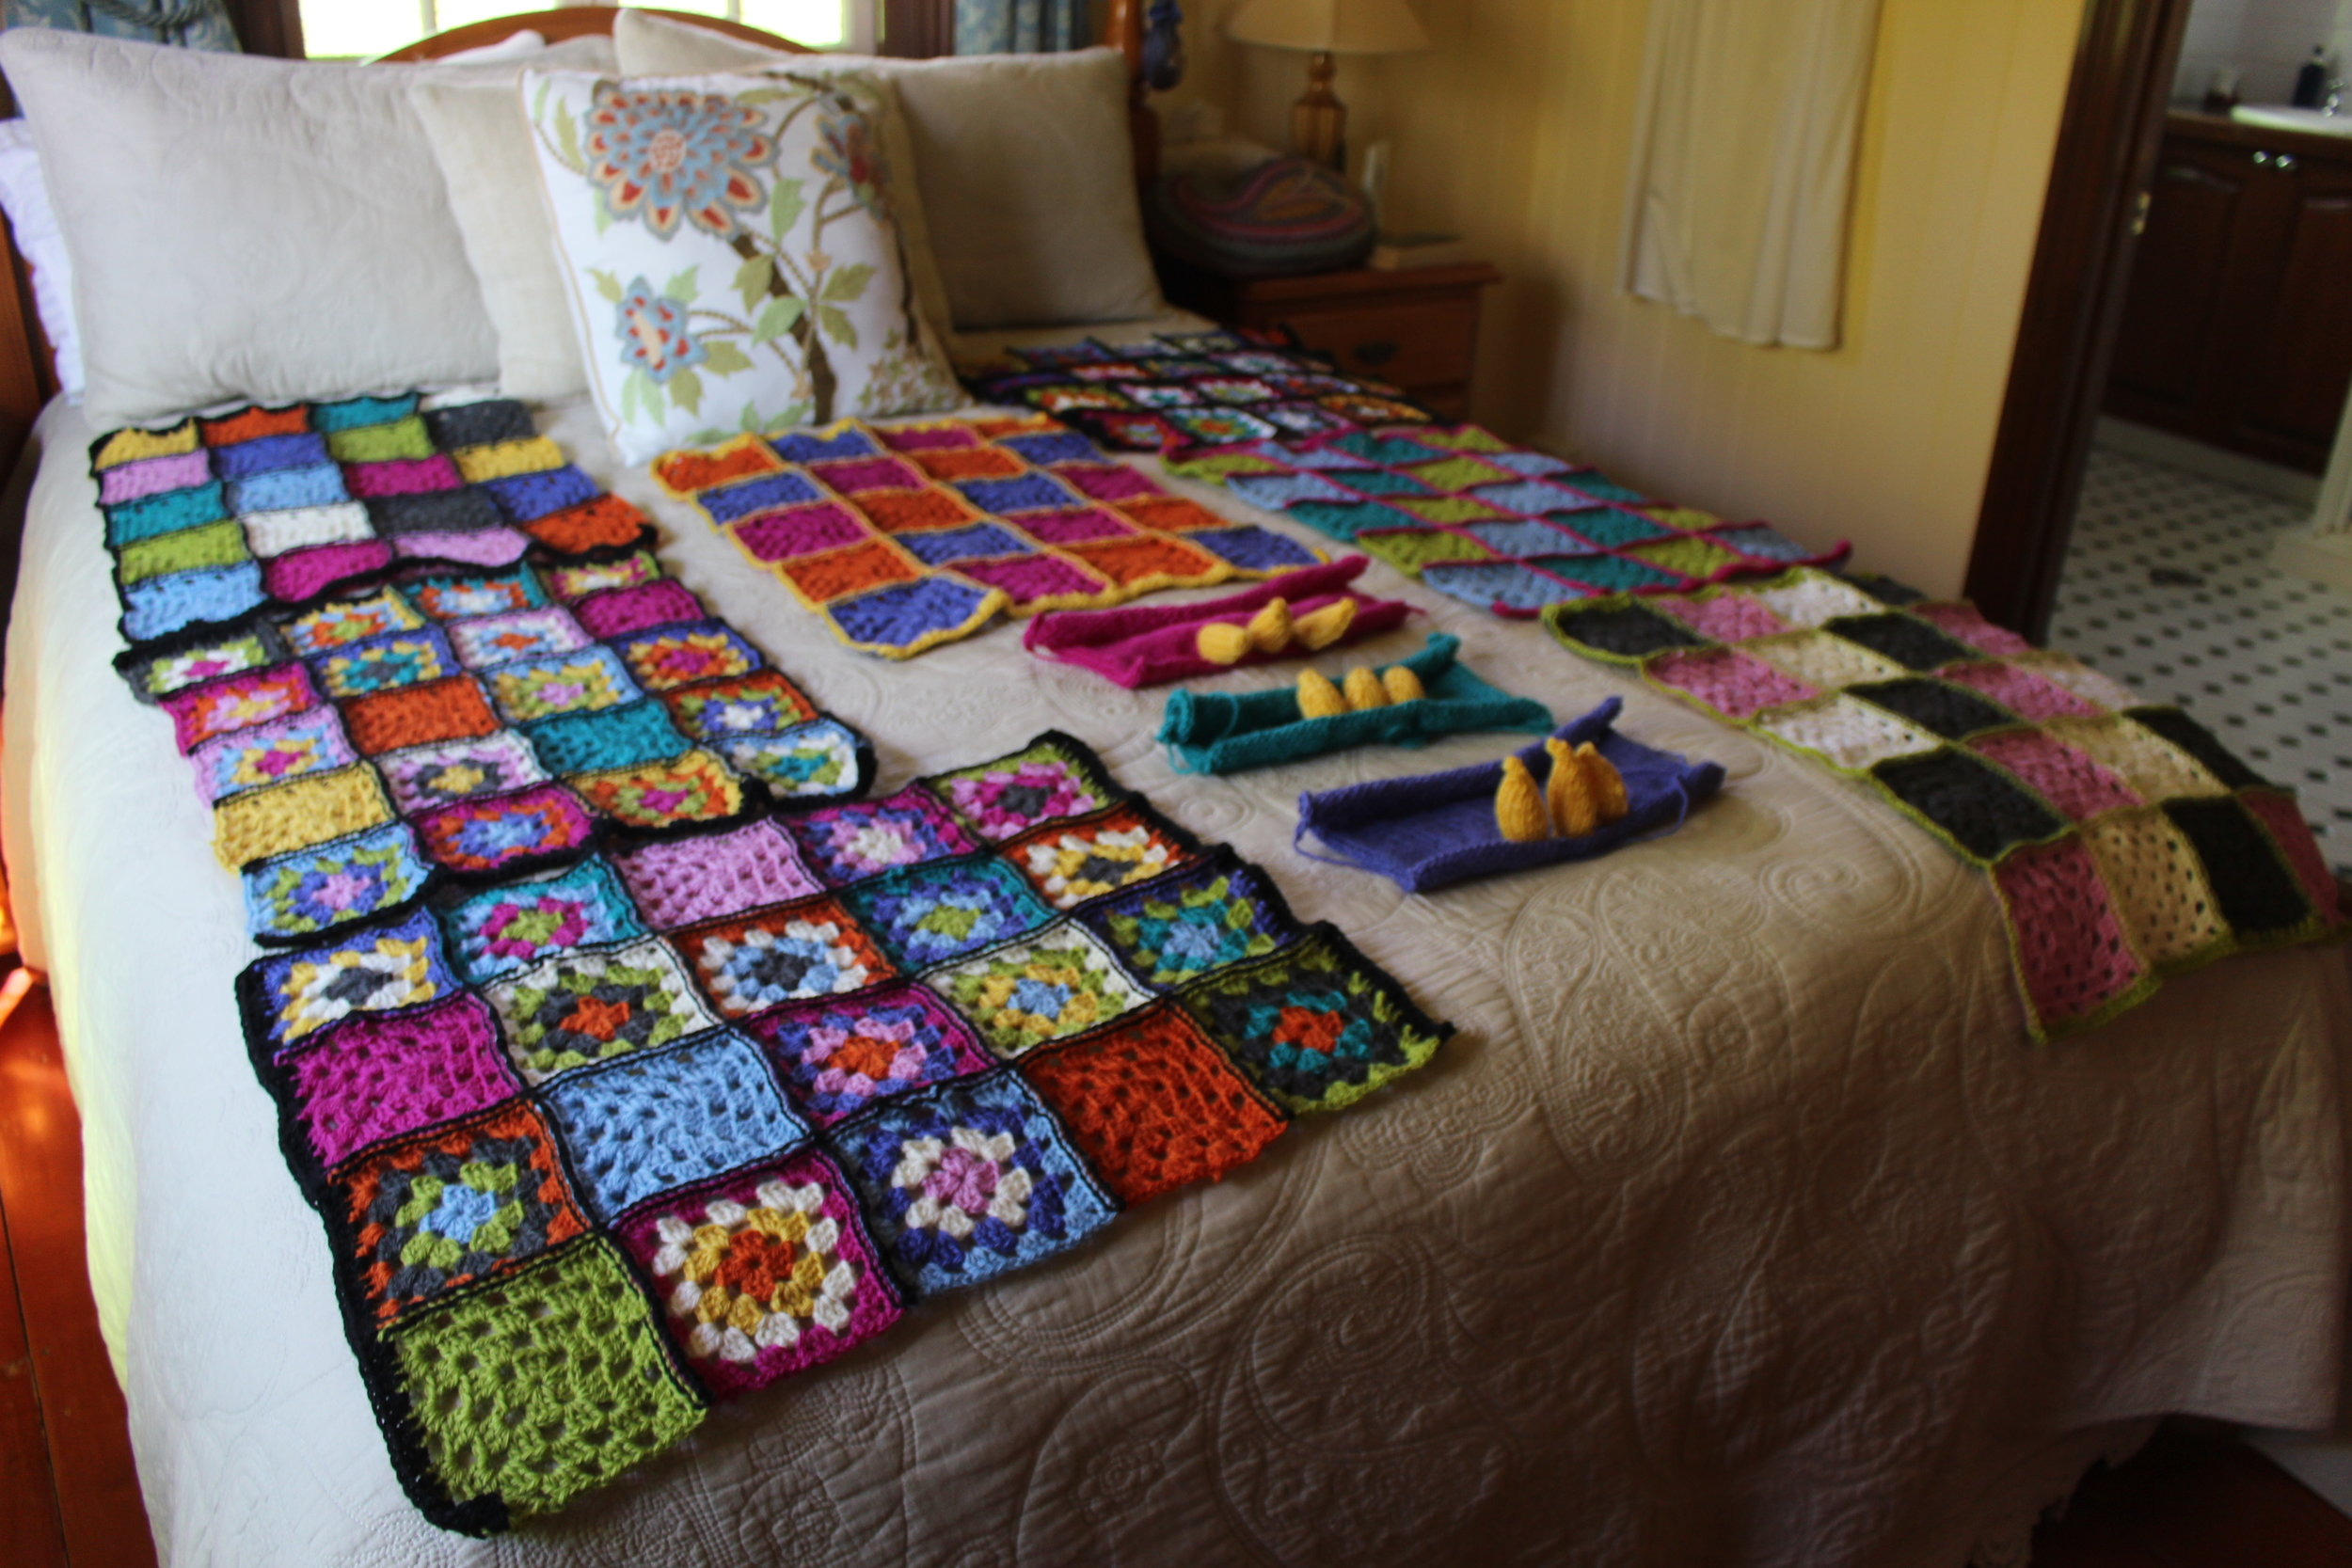 The crocheted squares are for the awning poles outside the cafe.